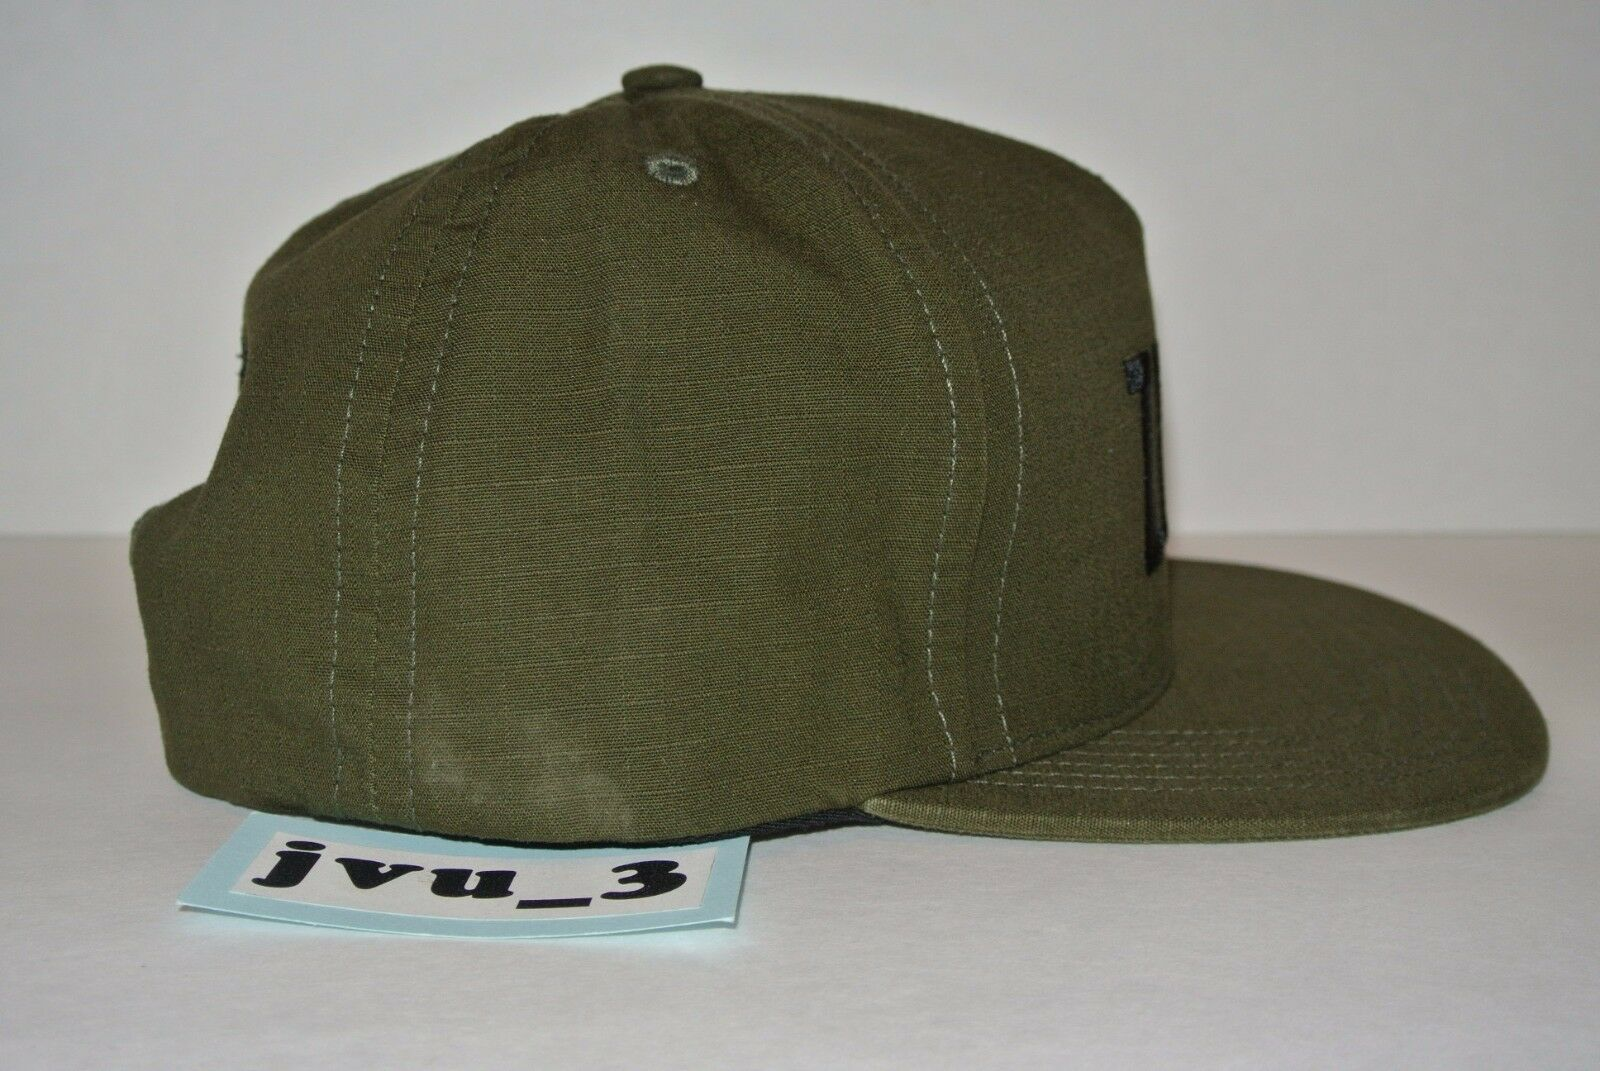 b84ba6ffbcb NEW SUPREME ZULU 5-PANEL SS16 OLIVE BOX LOGO BNWT hat comme cdg north ali  warhol